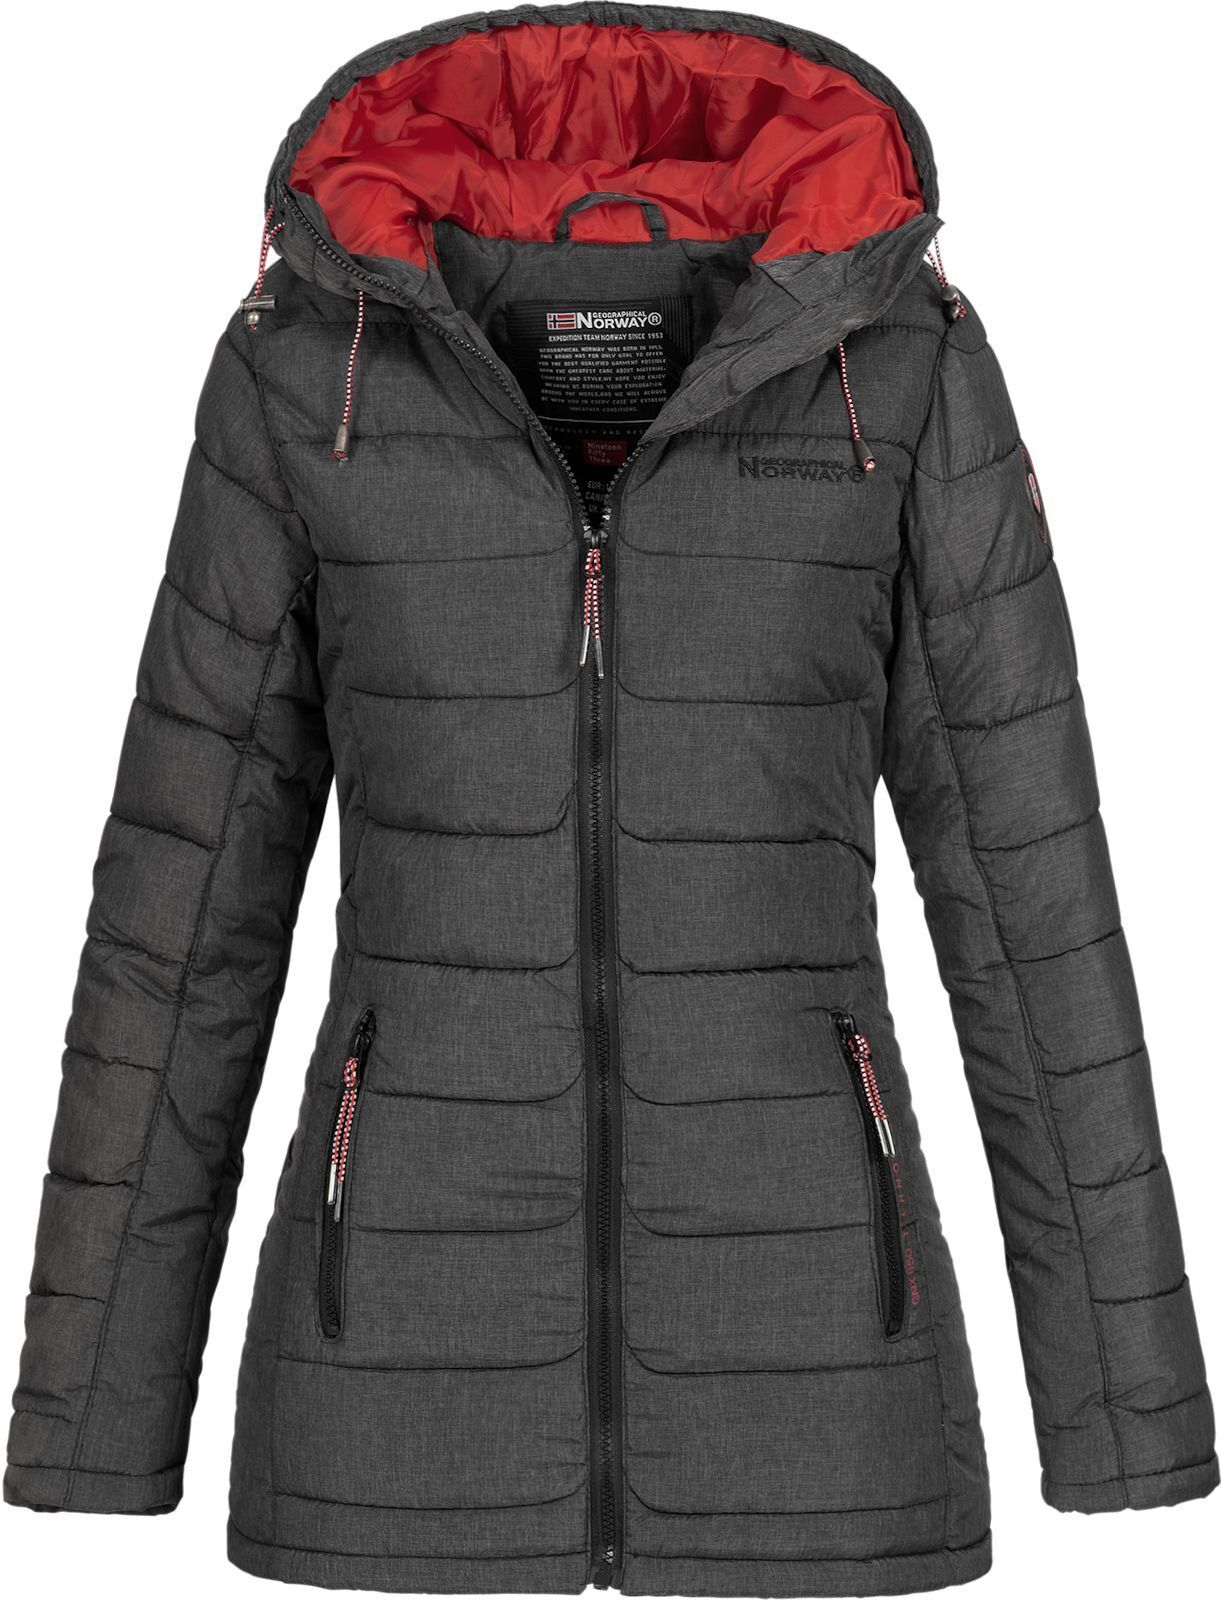 Geographical Norway Donna Giacca Trapuntata steppmantel